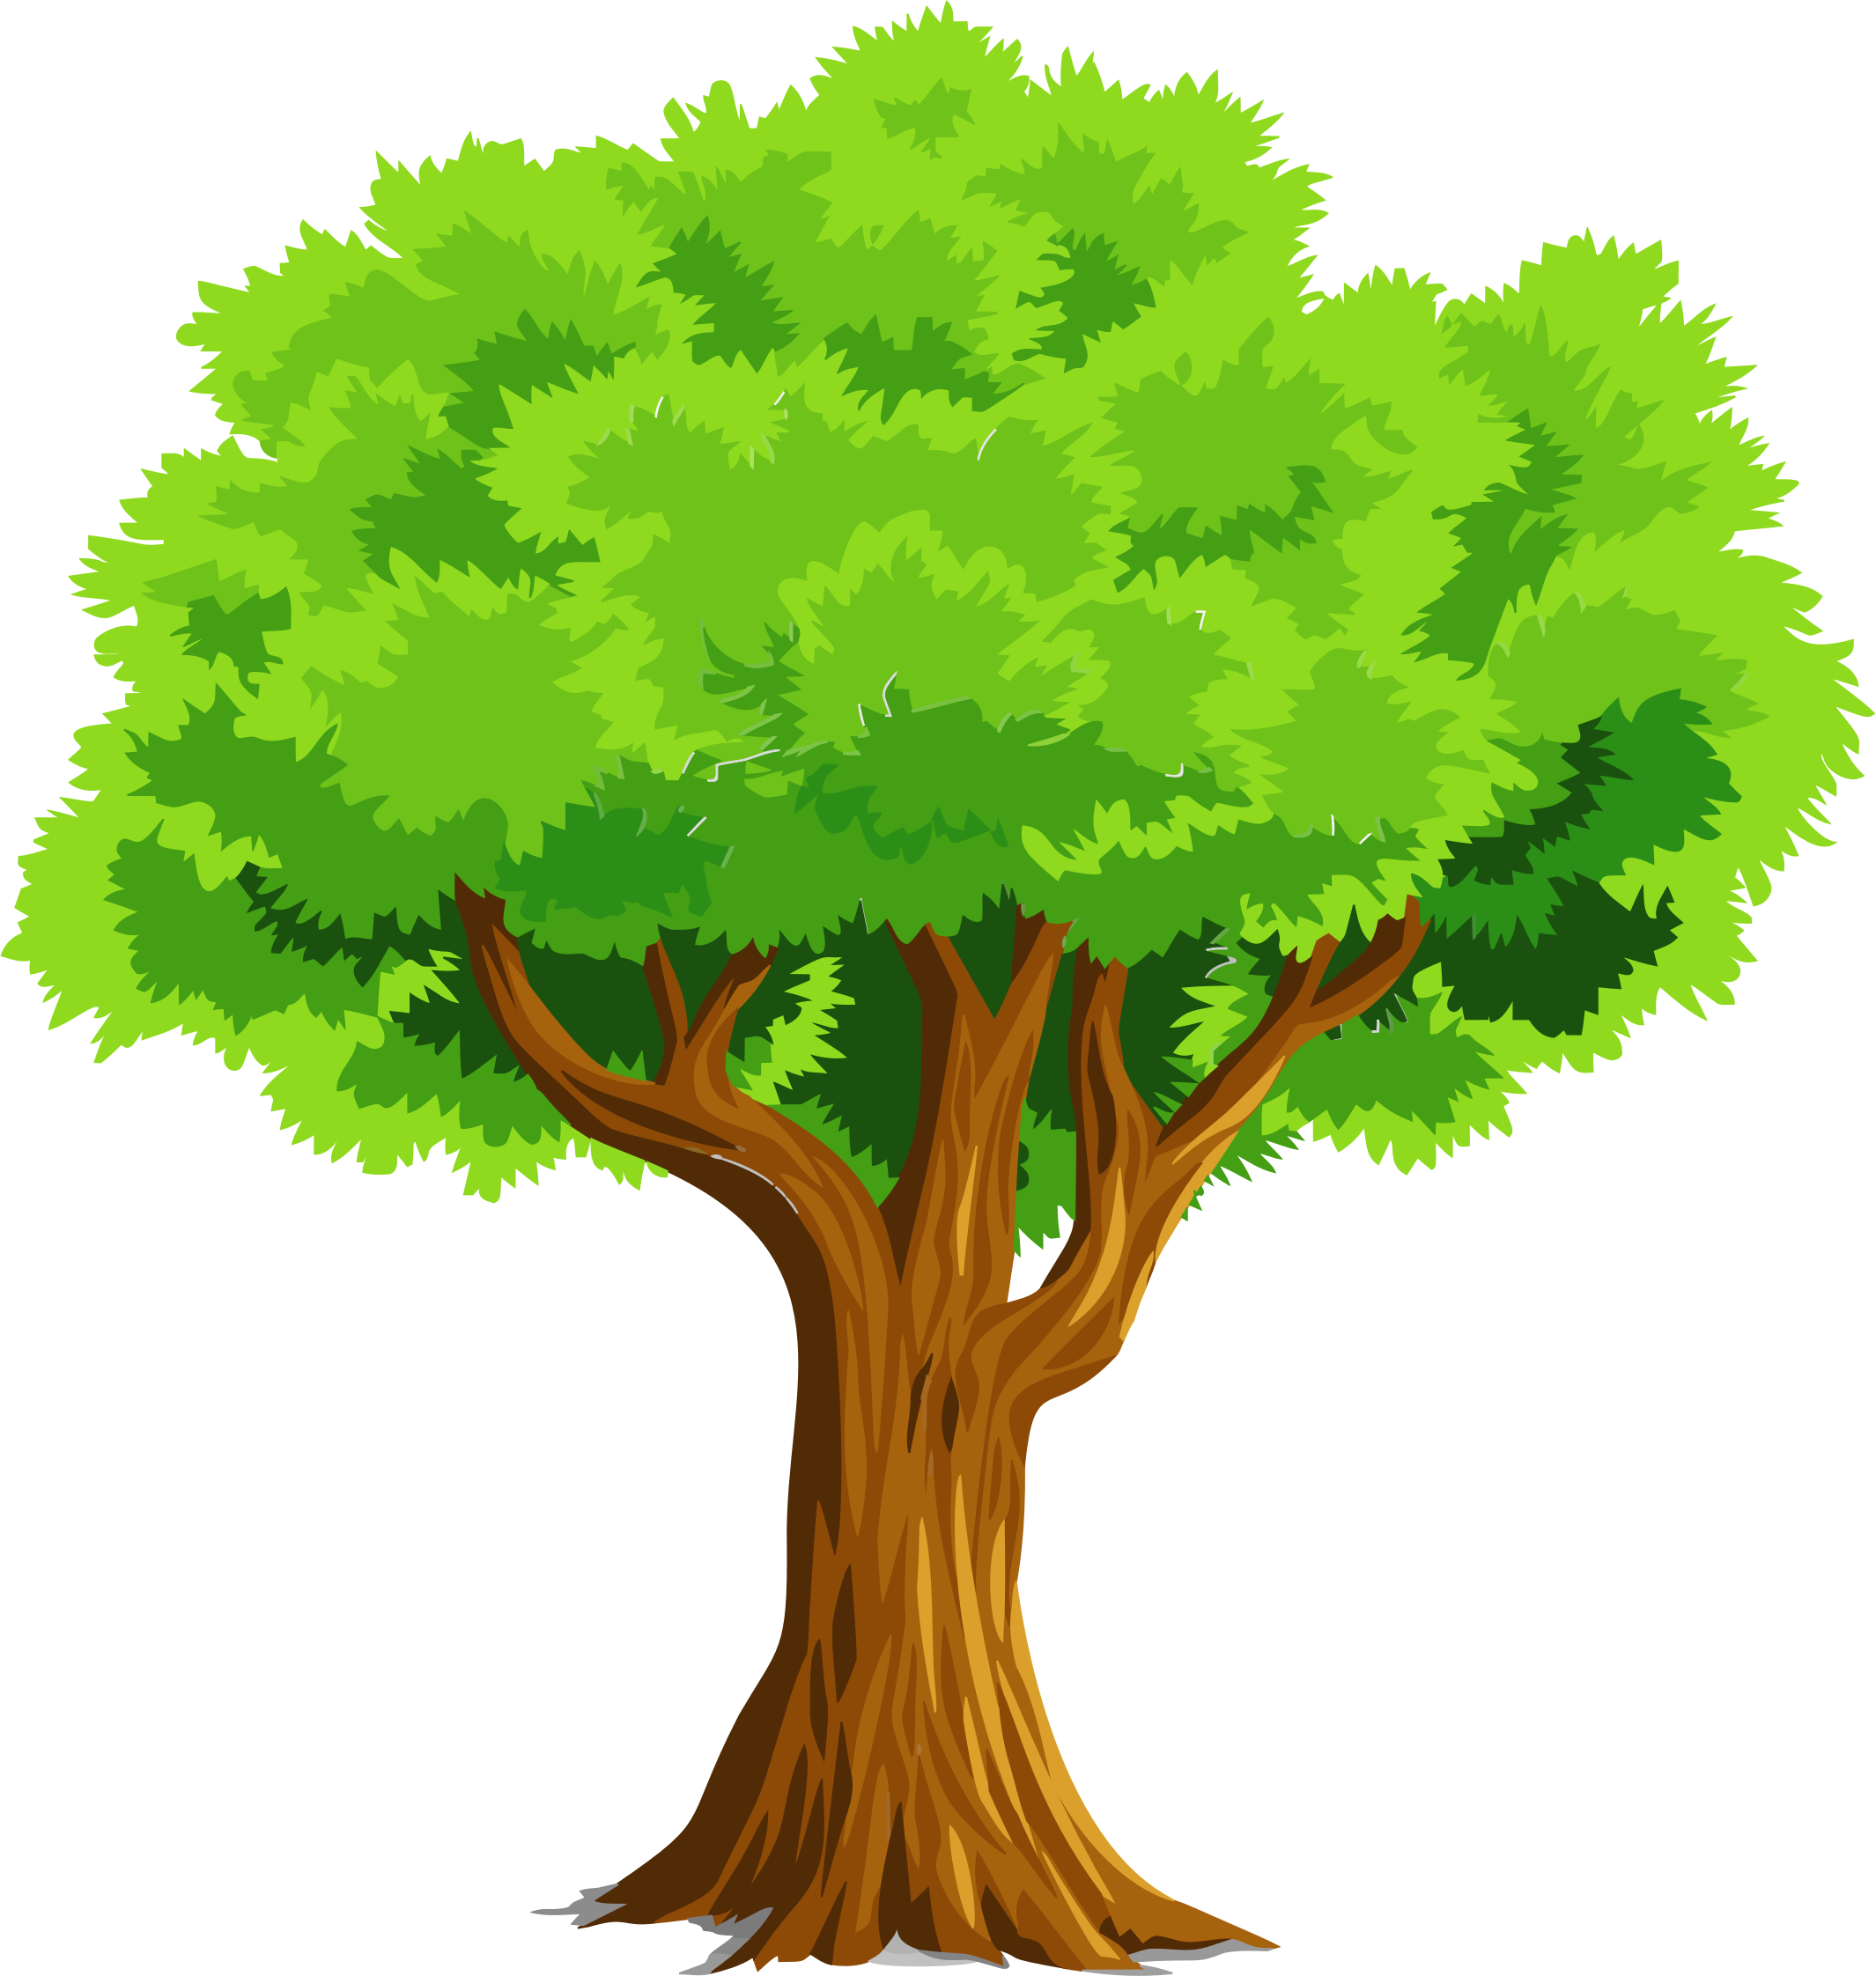 Colorful Natural Tree Vector Clipart image - Free stock ...